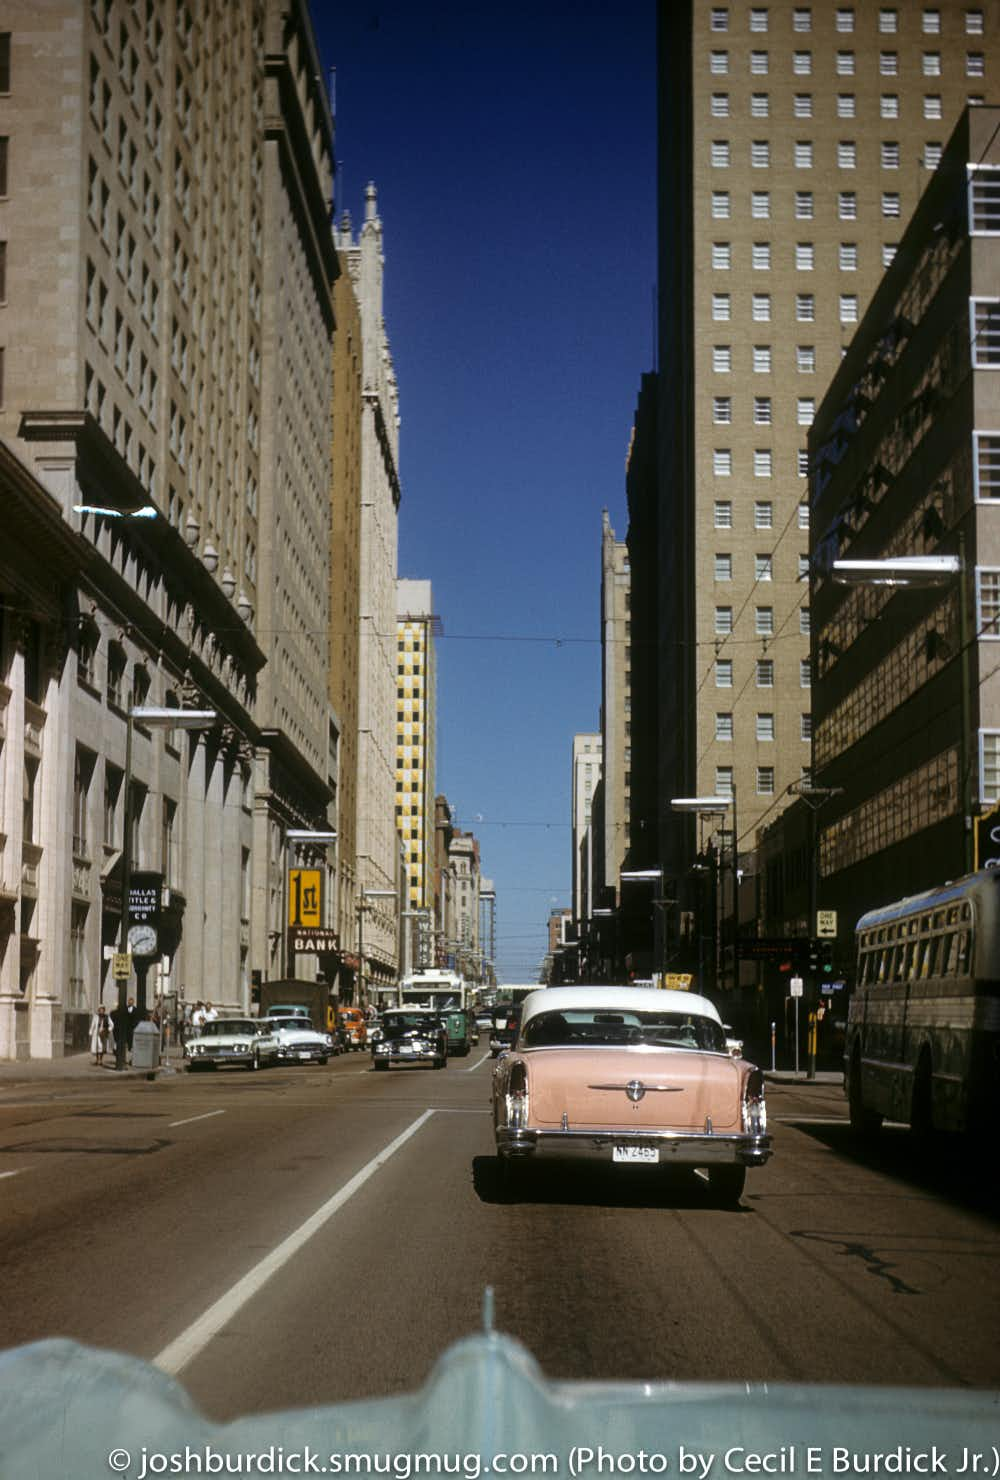 Browse never-before-seen color photos of Dallas taken in the 1950s and '60s